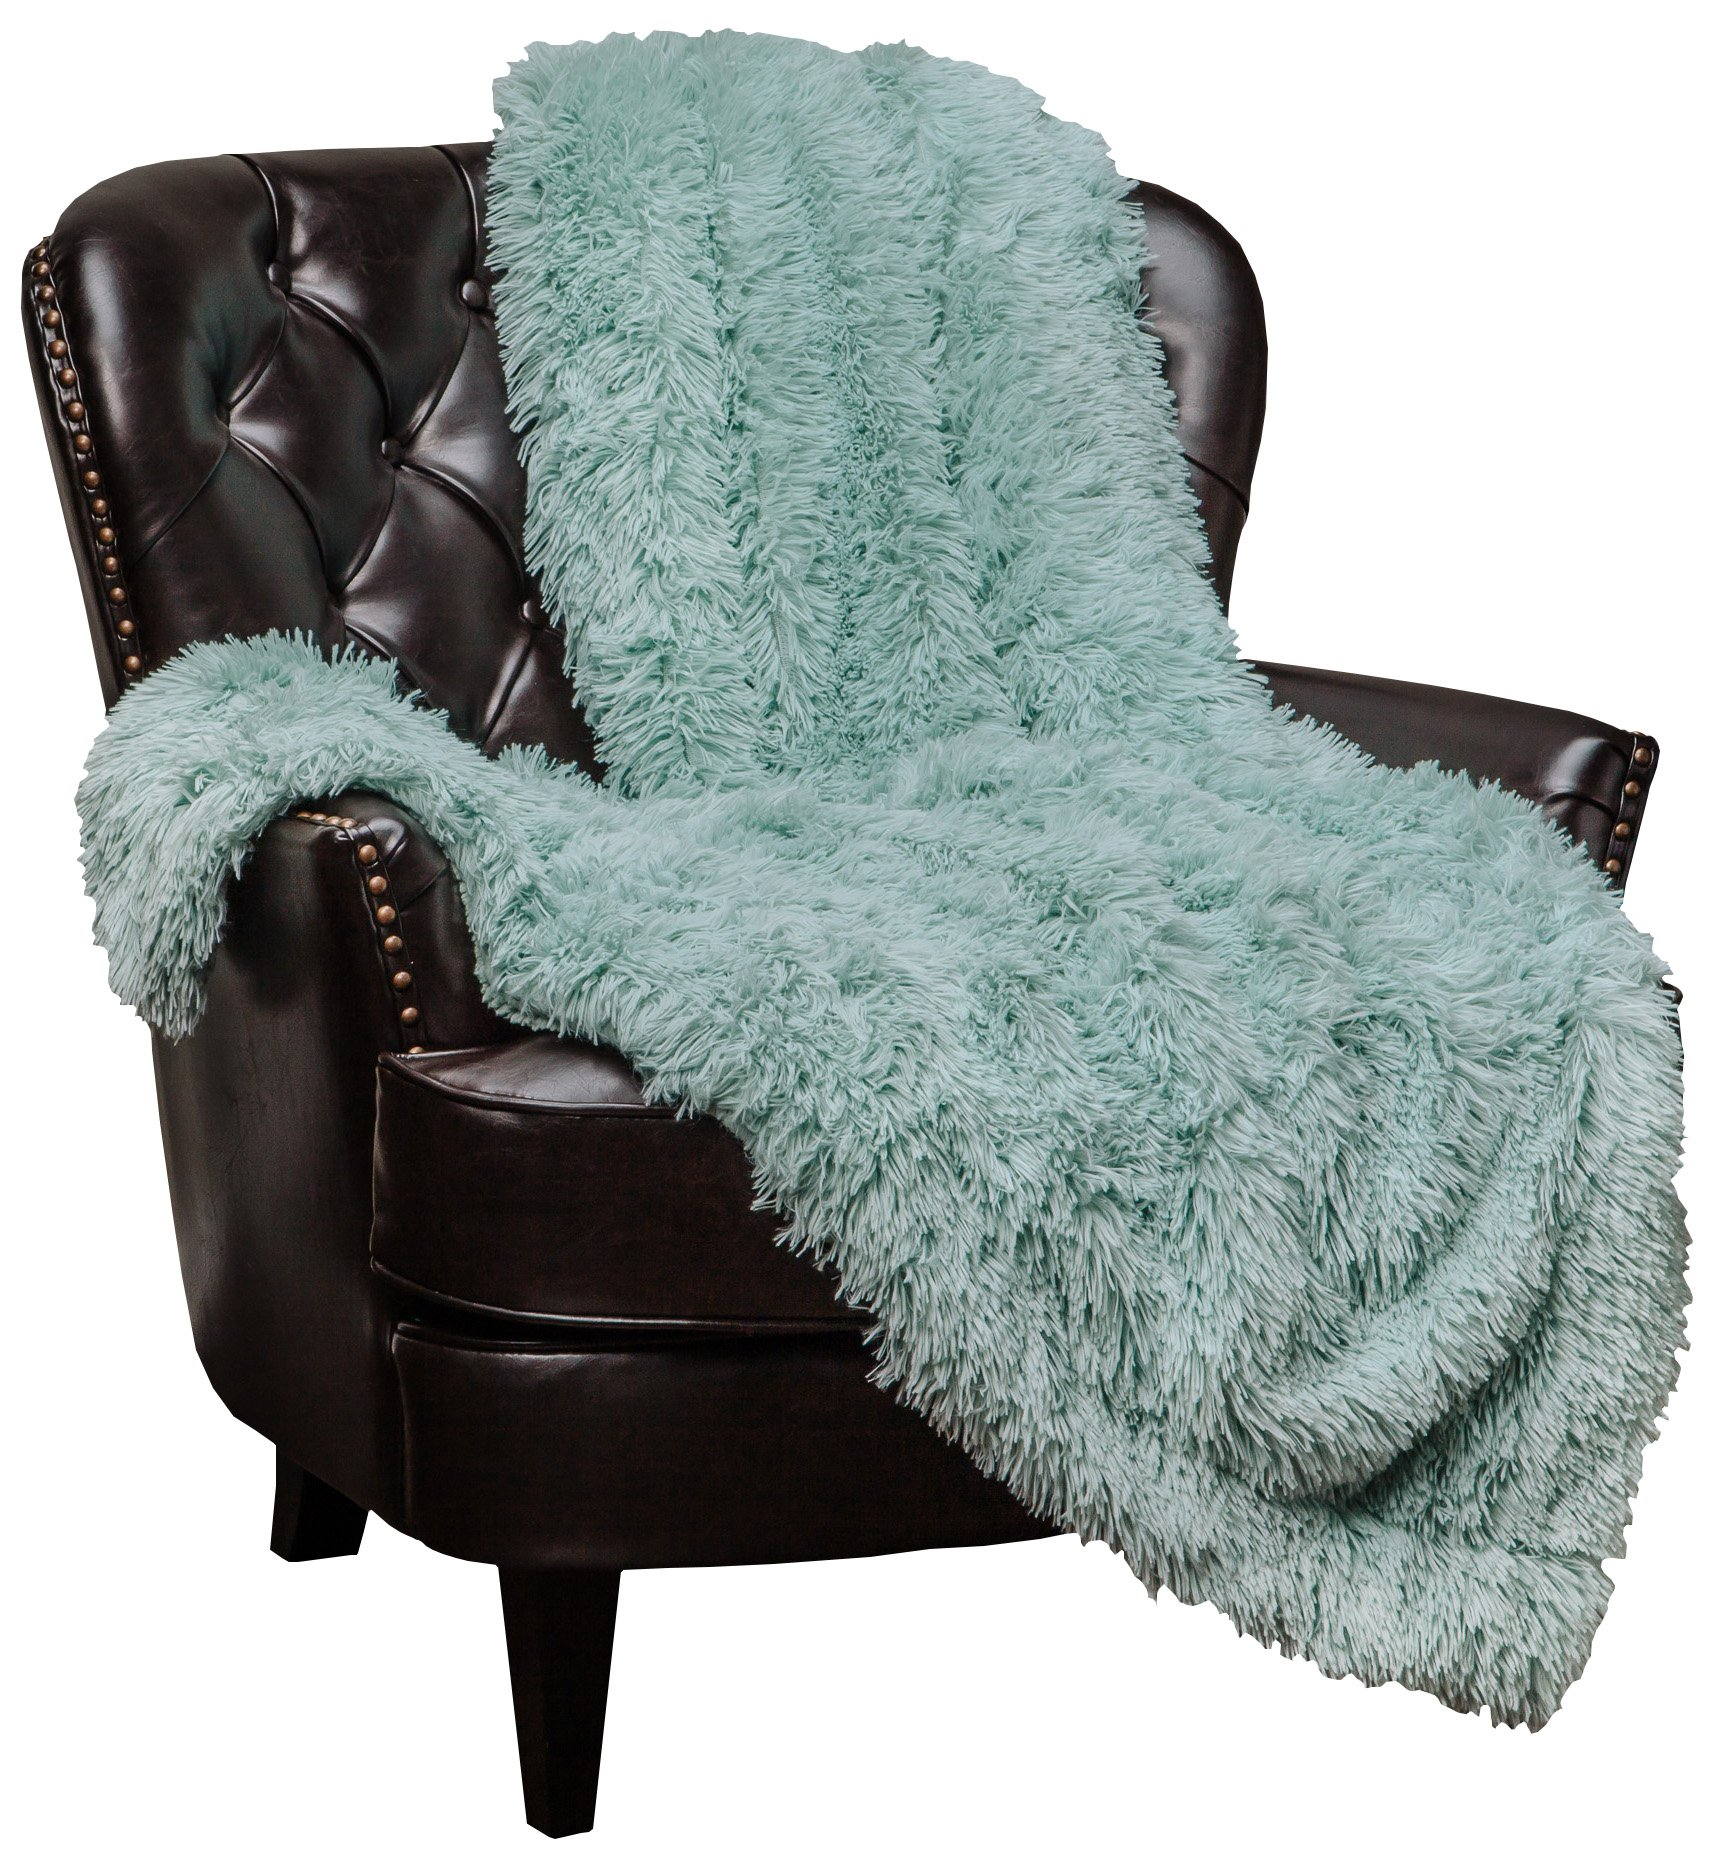 Chanasya Super Soft Shaggy Longfur Throw Blanket | Snuggly Fuzzy Faux Fur Lightweight Warm Elegant Cozy Plush Sherpa Microfiber Blanket | for Couch Bed Chair Photo Props - 60''x 70'' - Aqua Turquoise by Chanasya